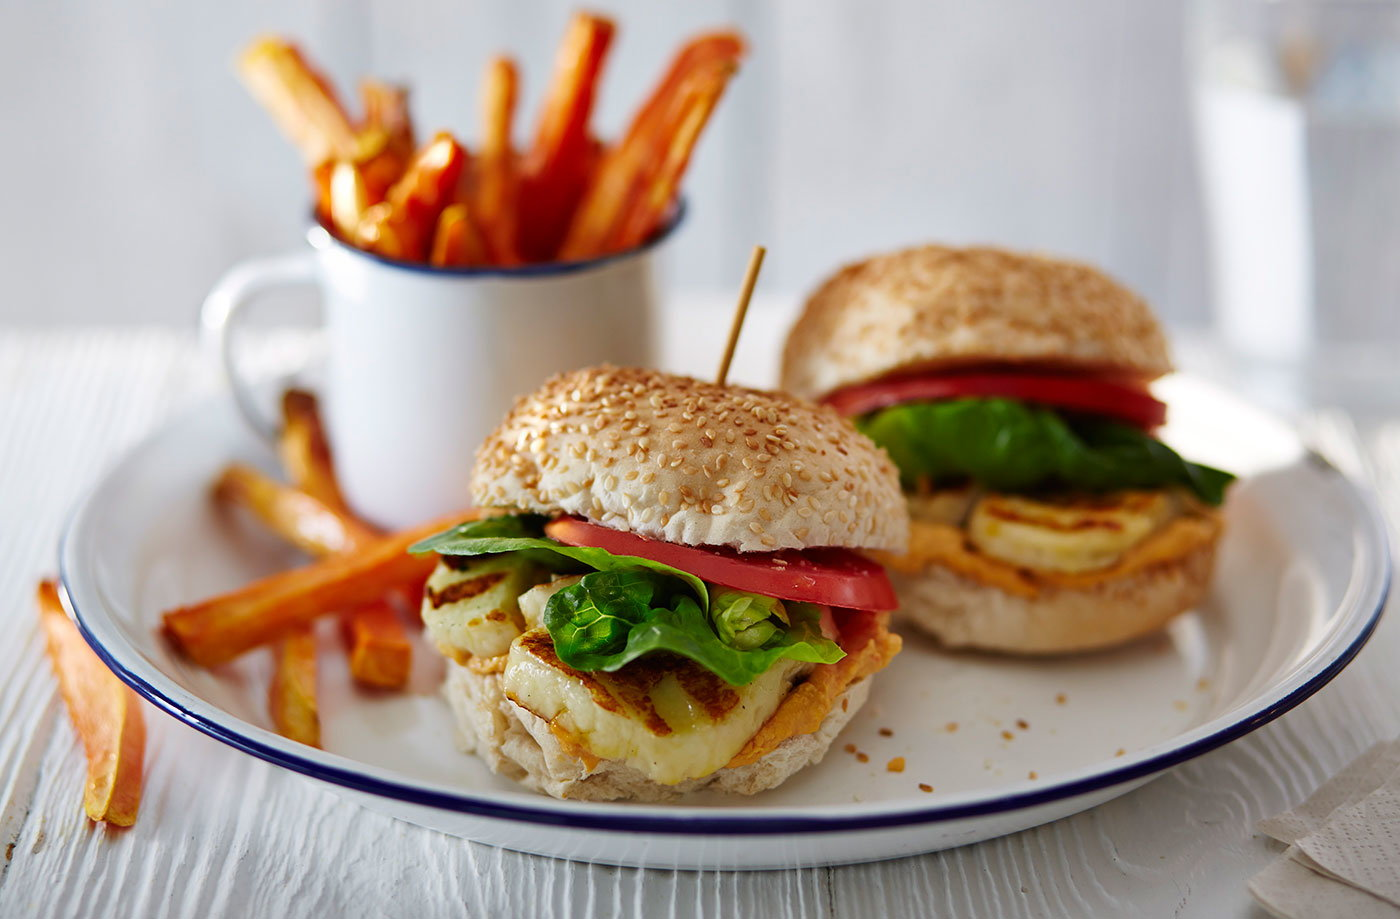 Halloumi burgers with red pepper houmous and sweet potato chips